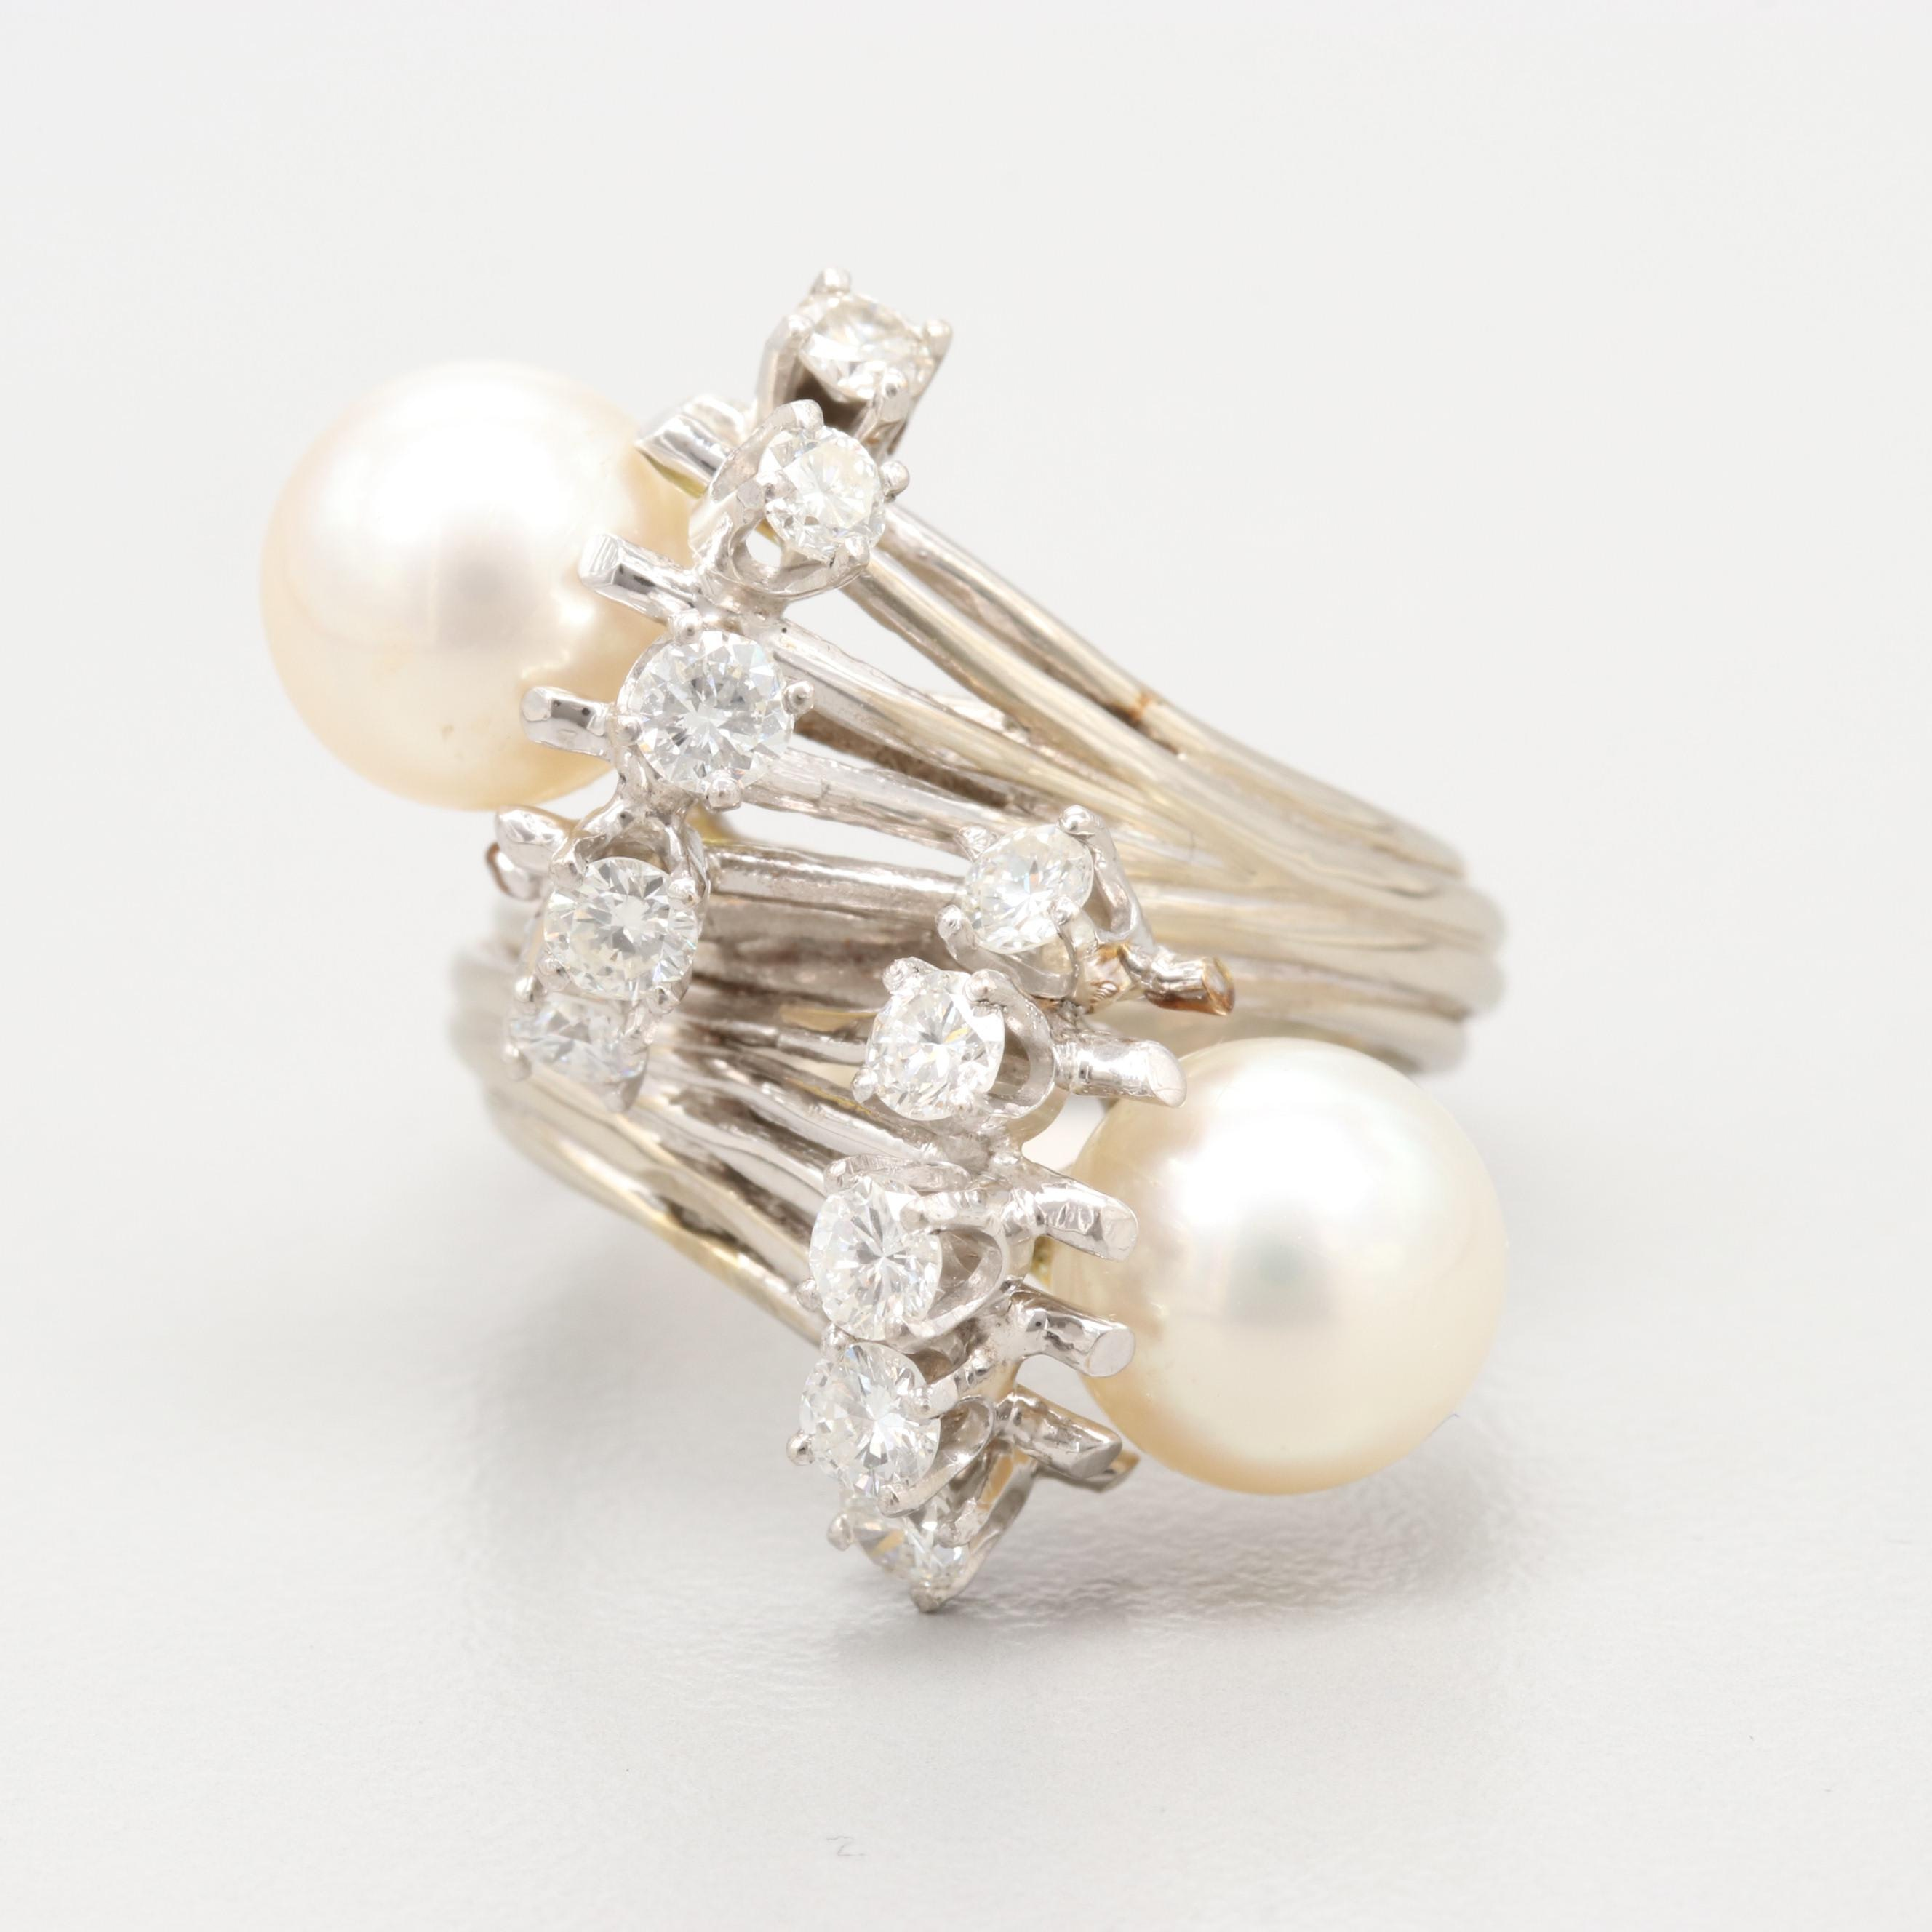 14K White Gold Cultured Pearl and 0.90 CTW Diamond Ring